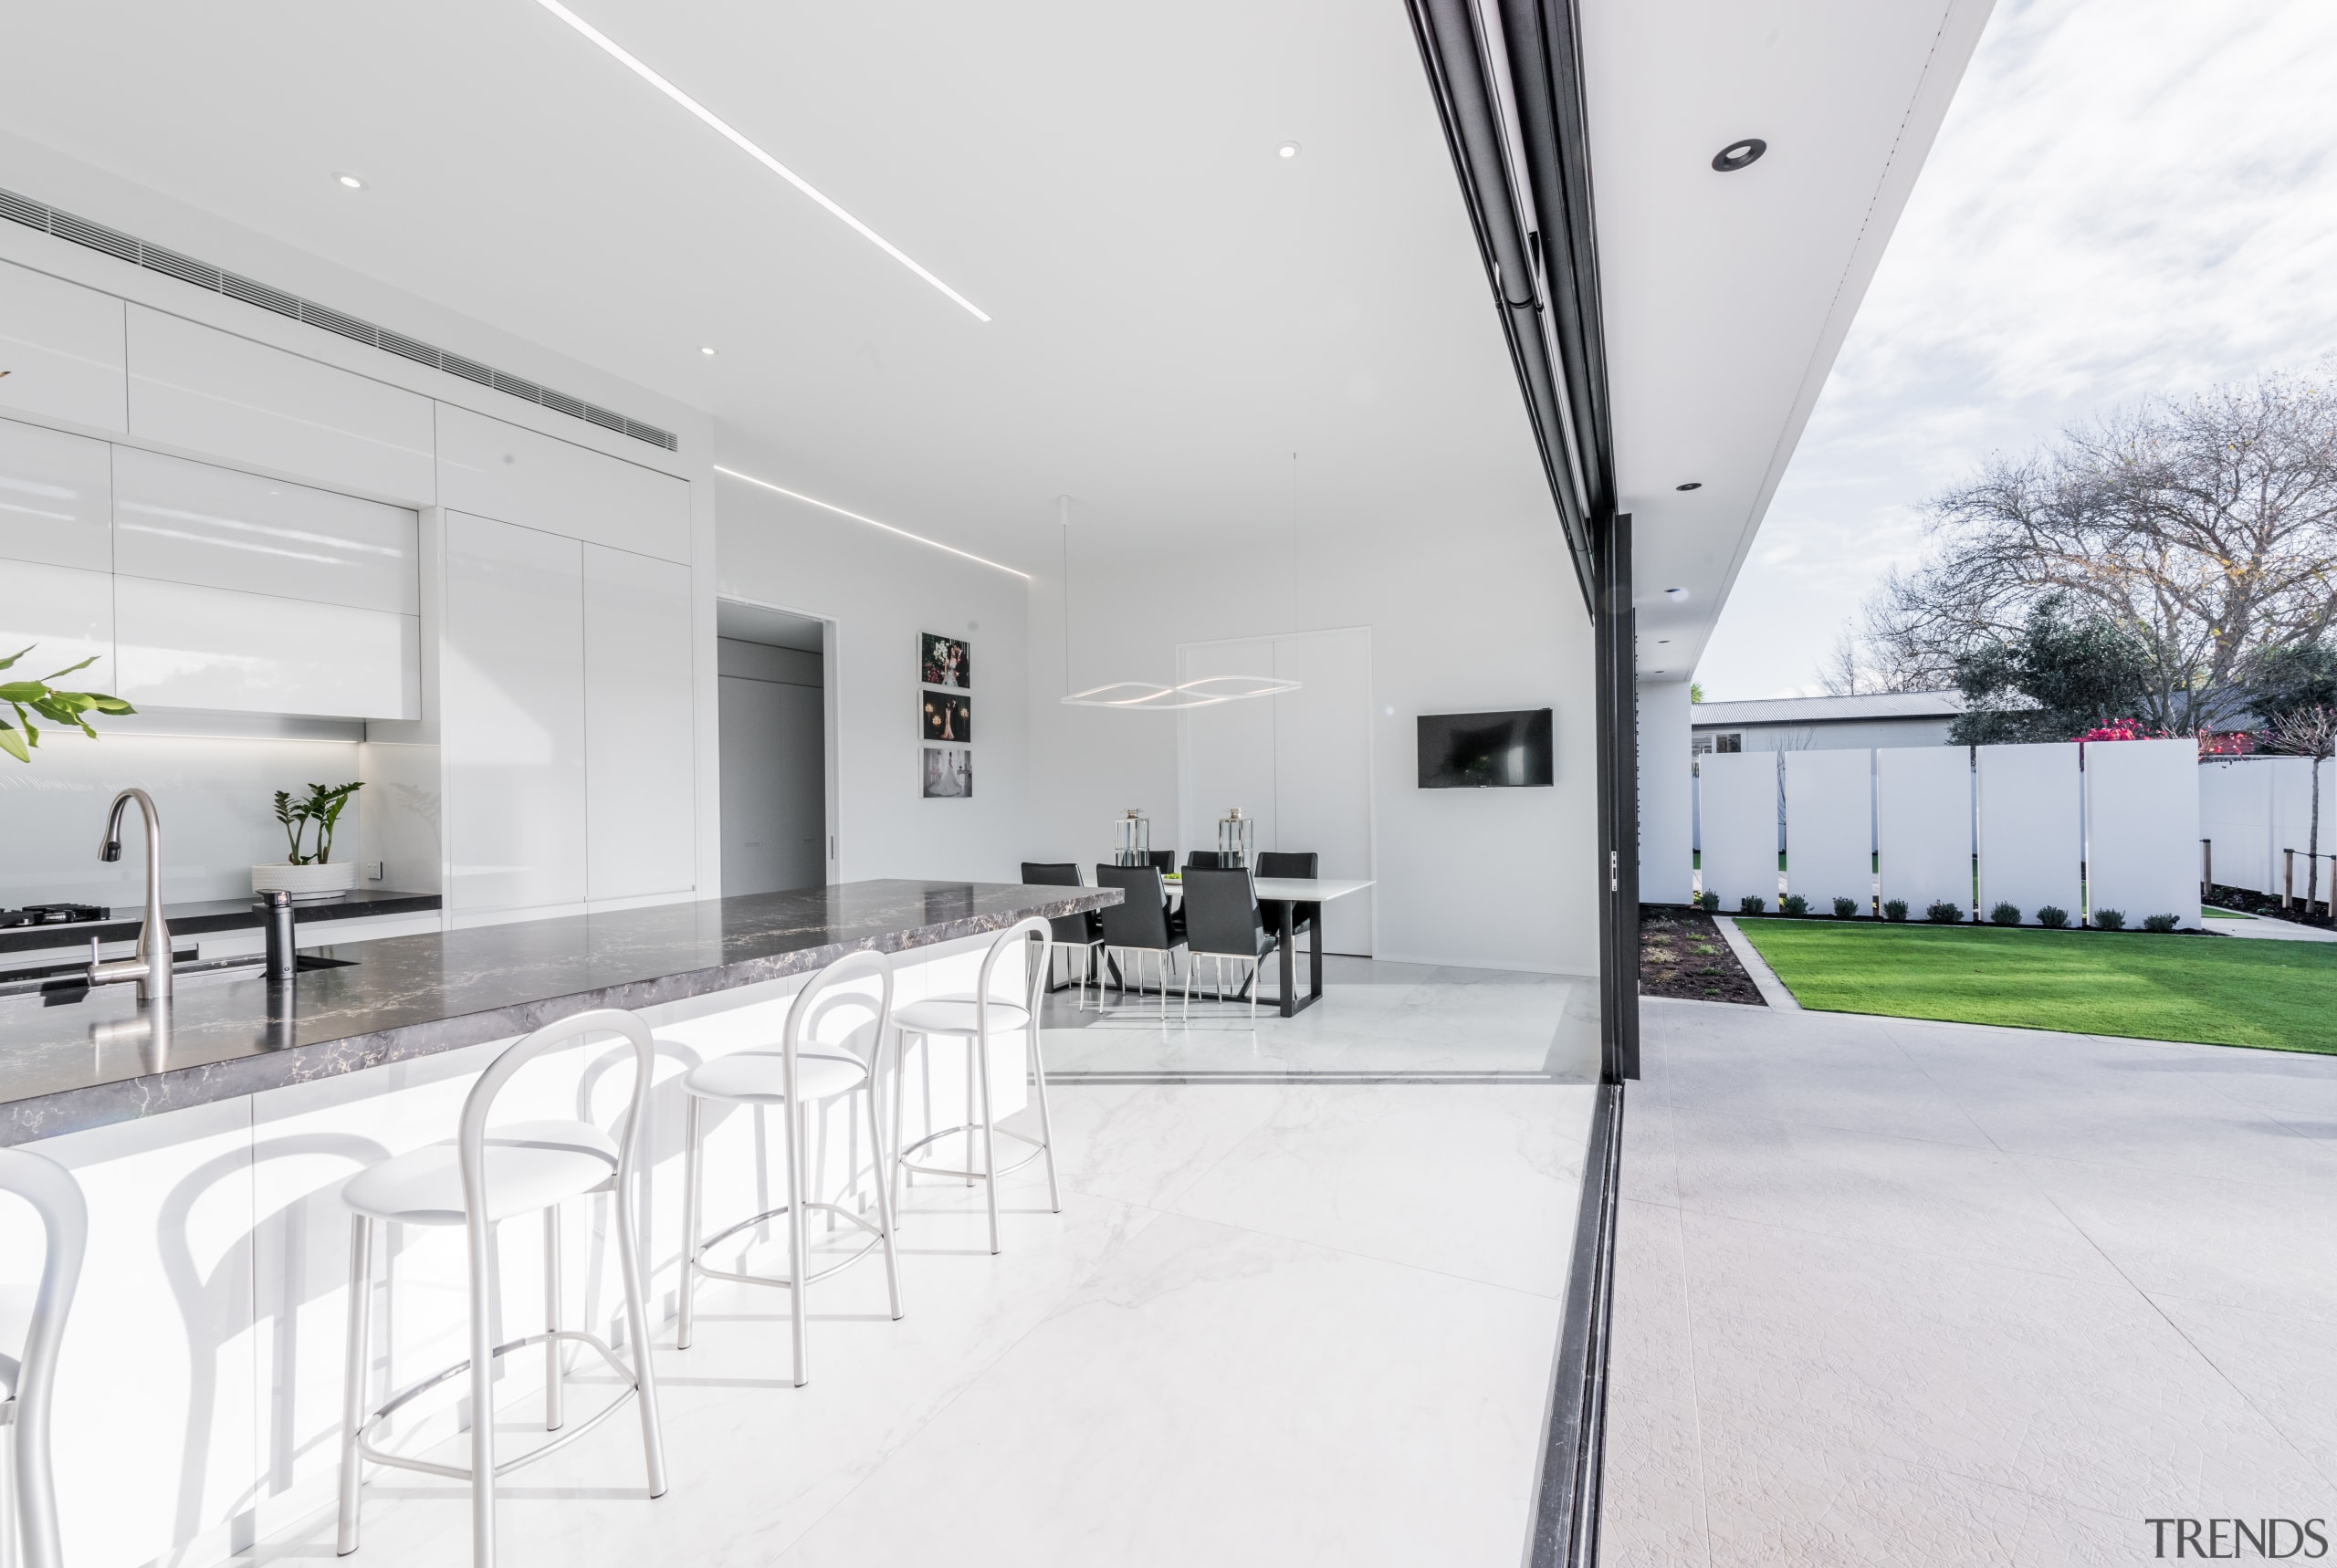 The big picture – this white kitchen by architecture, house, interior design, indoor, outdoor flow,  Emma Morris, Enternodesign